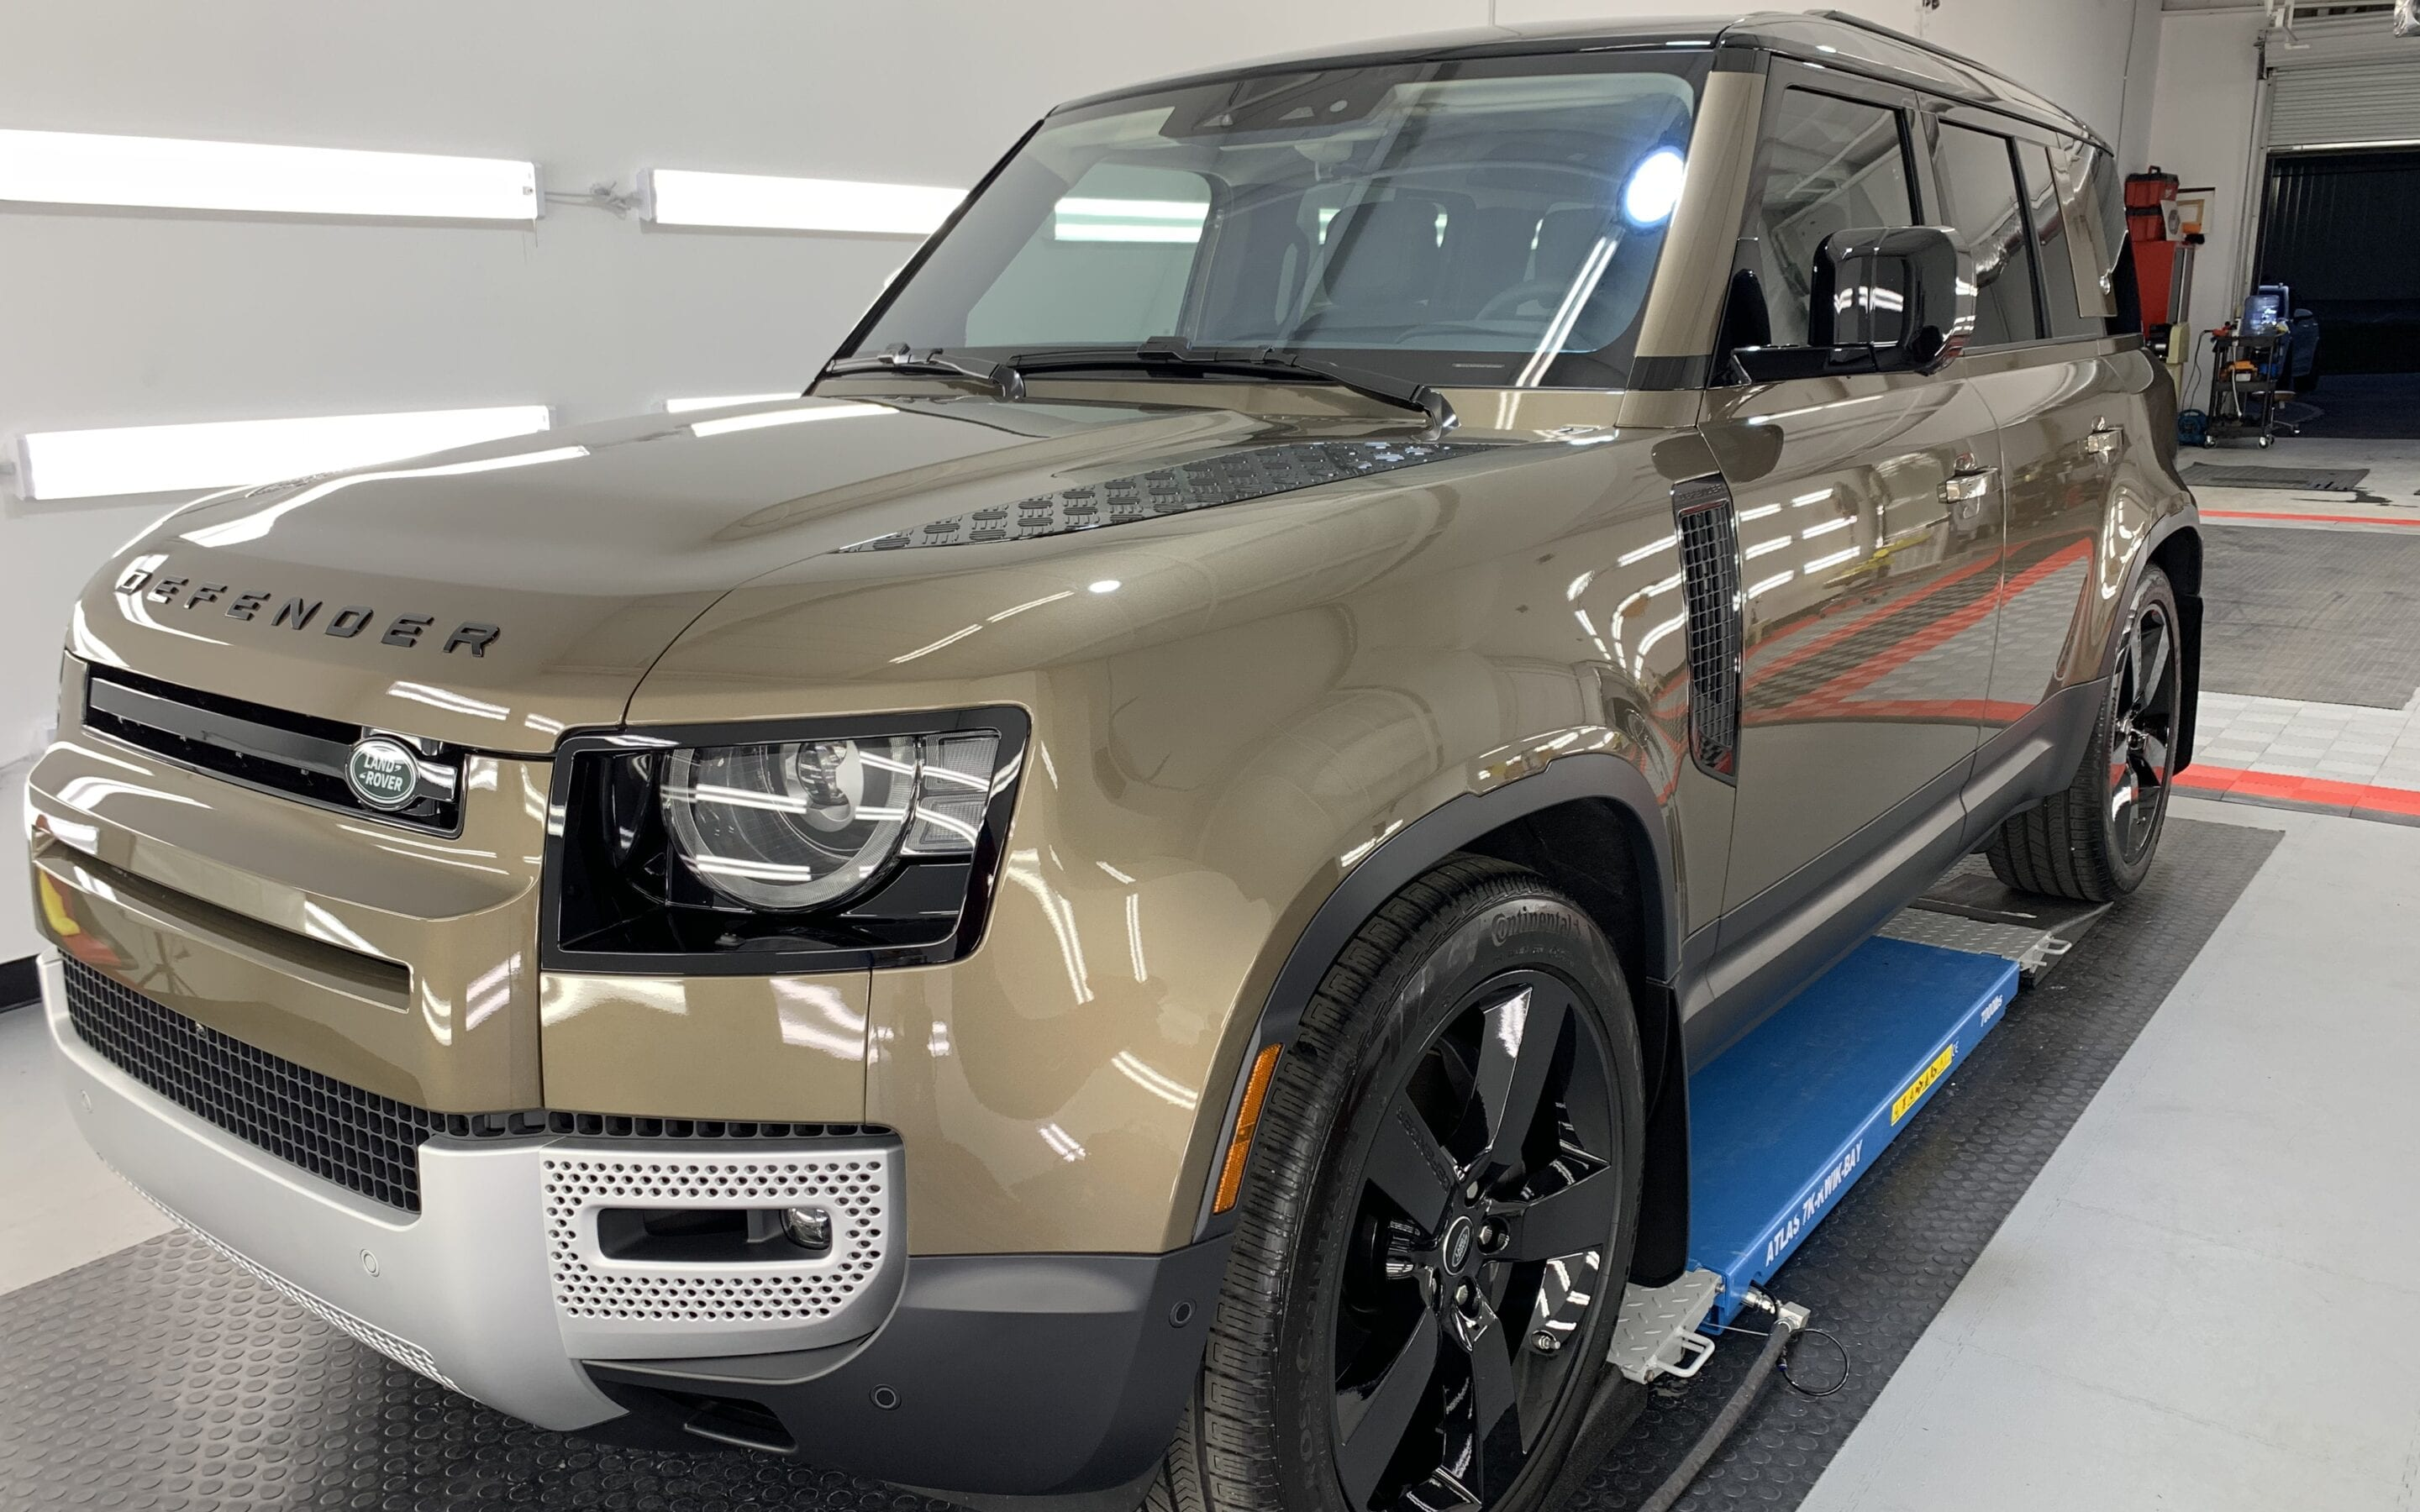 Photo of a New Car Preparation of a 2020 Land Rover Defender